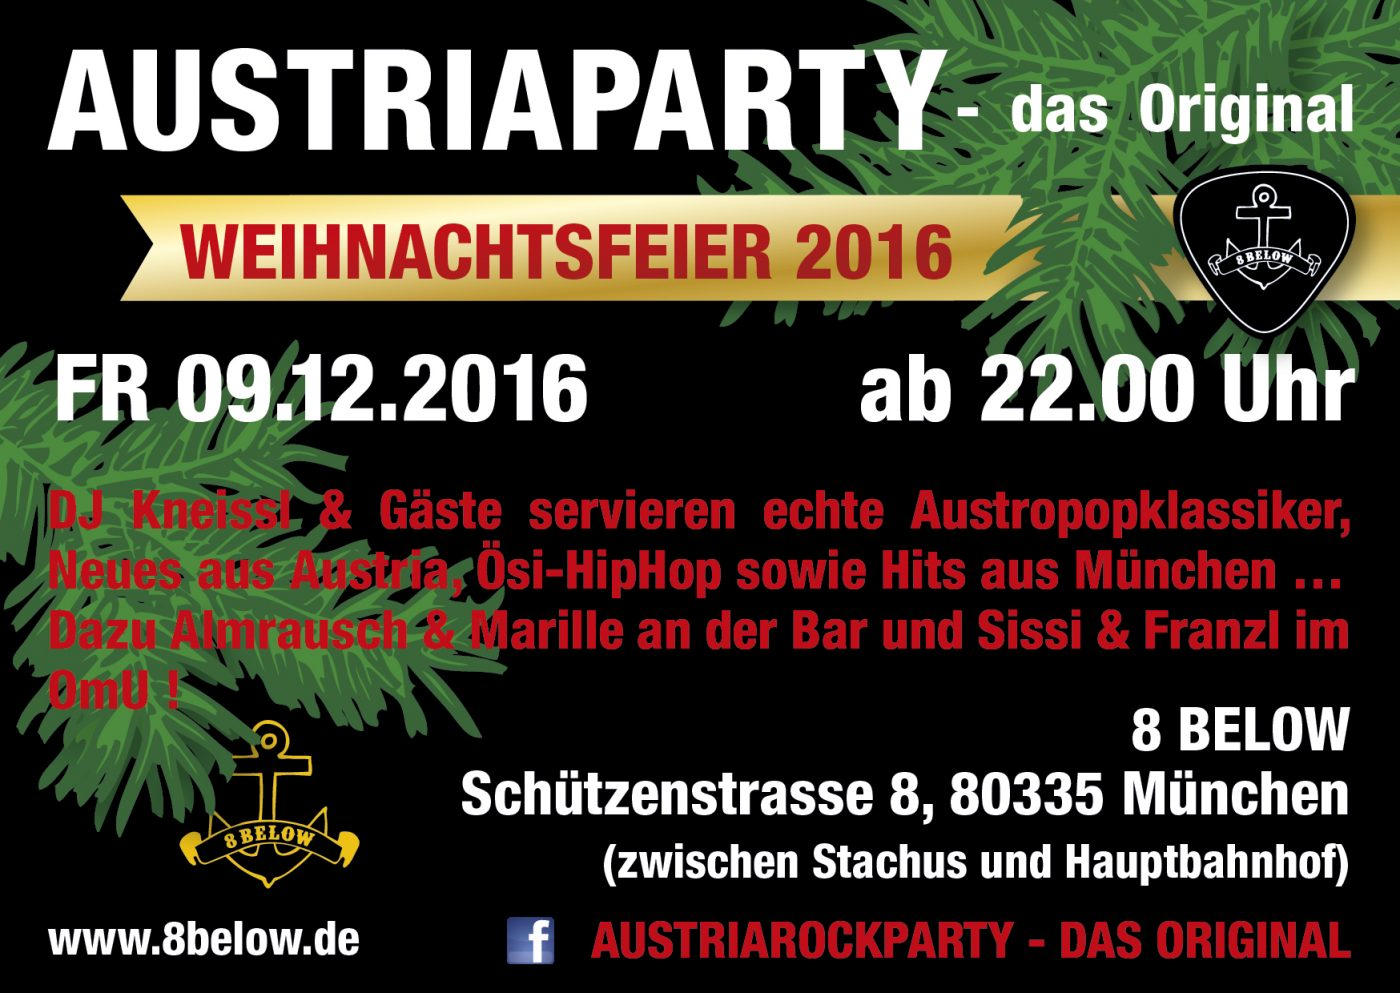 Austria Party christmas special rear side 2016